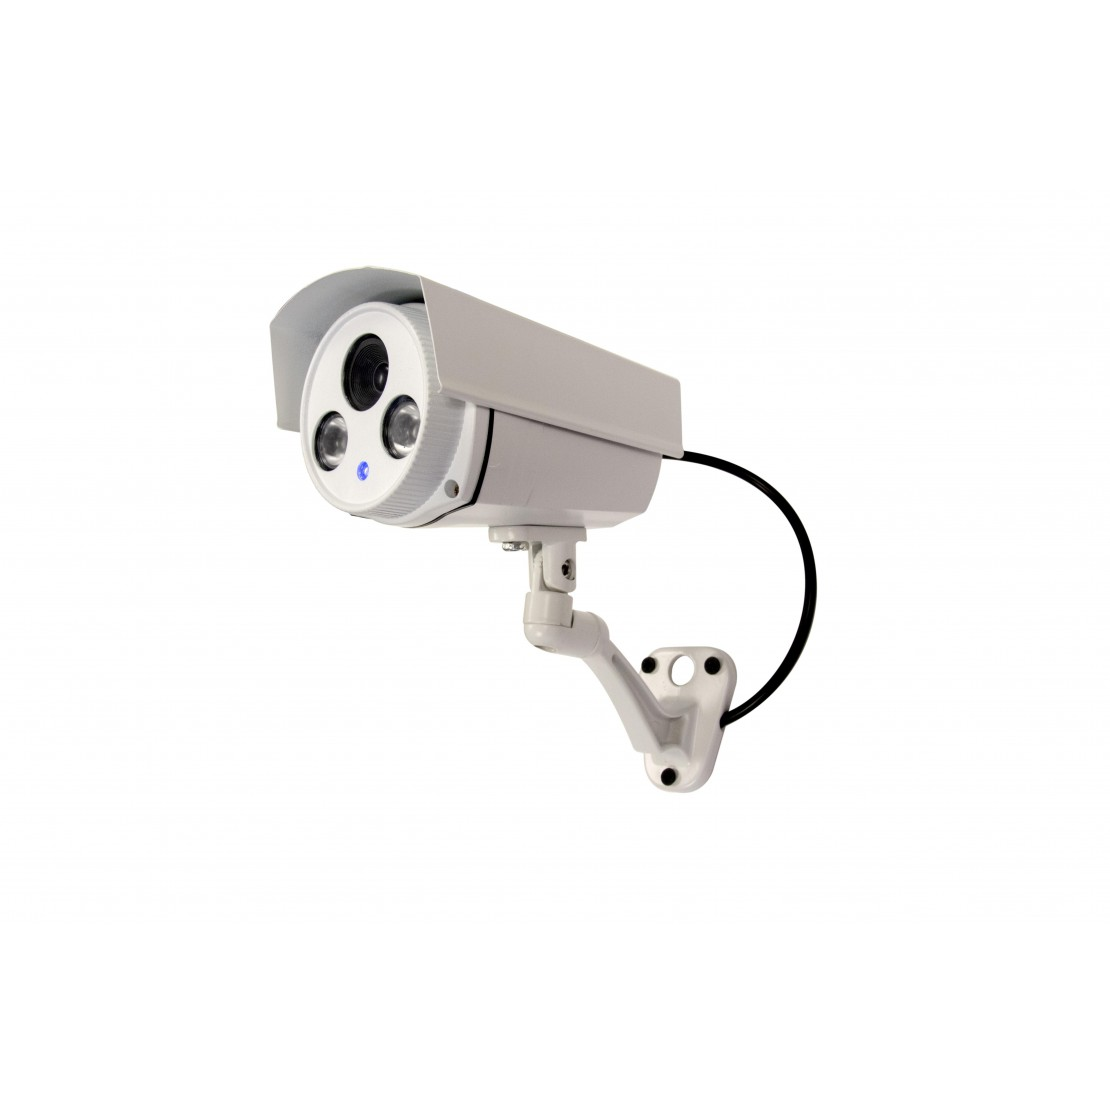 Dummy aluminium outdoor camera with blue LED